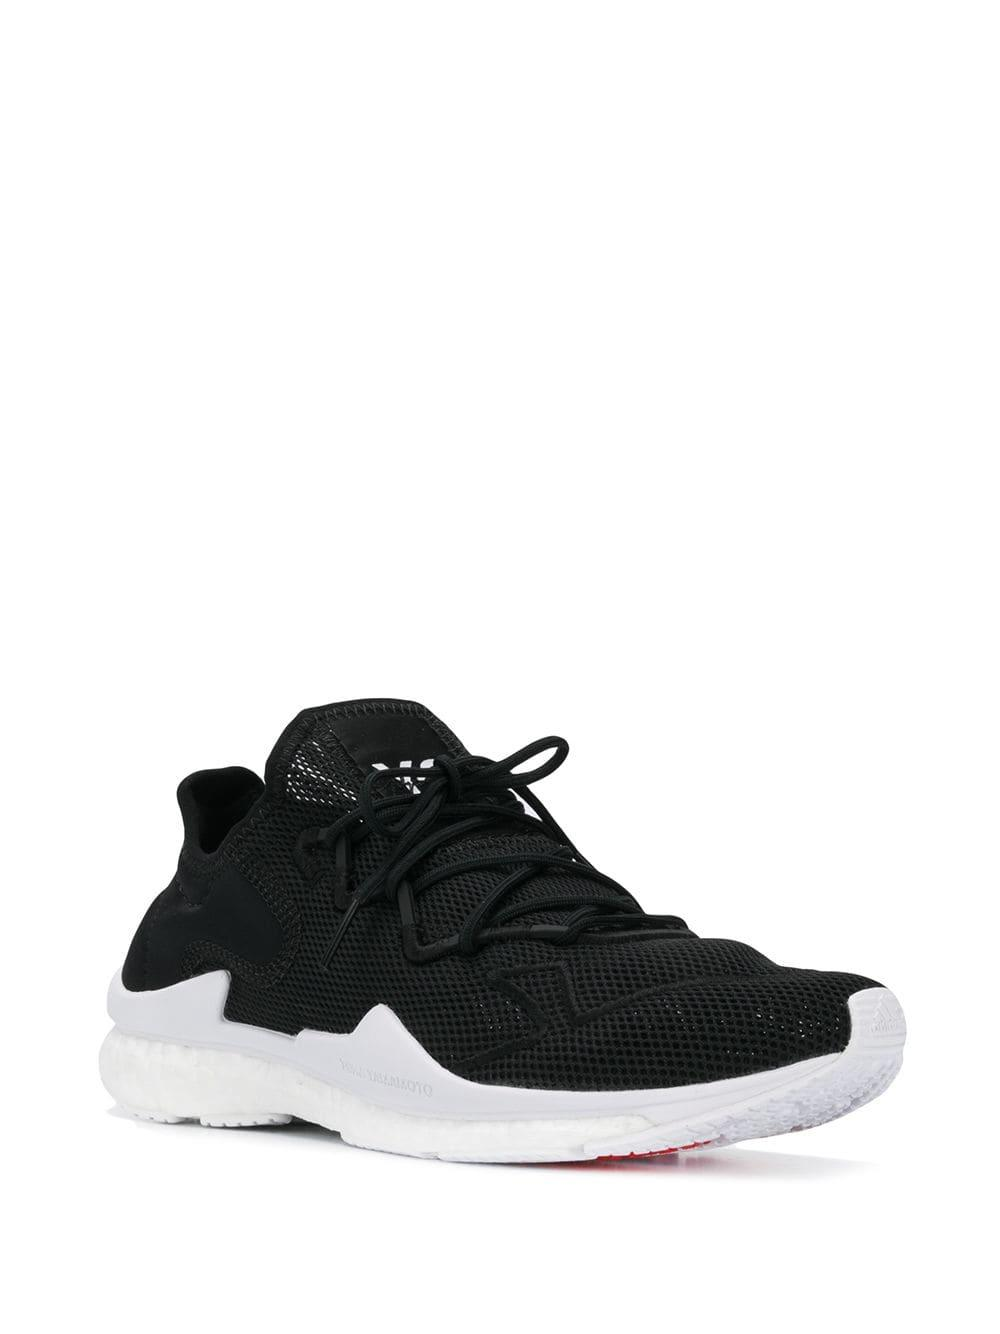 47244b1dc Lyst - Y-3 Mesh Low Top Trainers in Black for Men